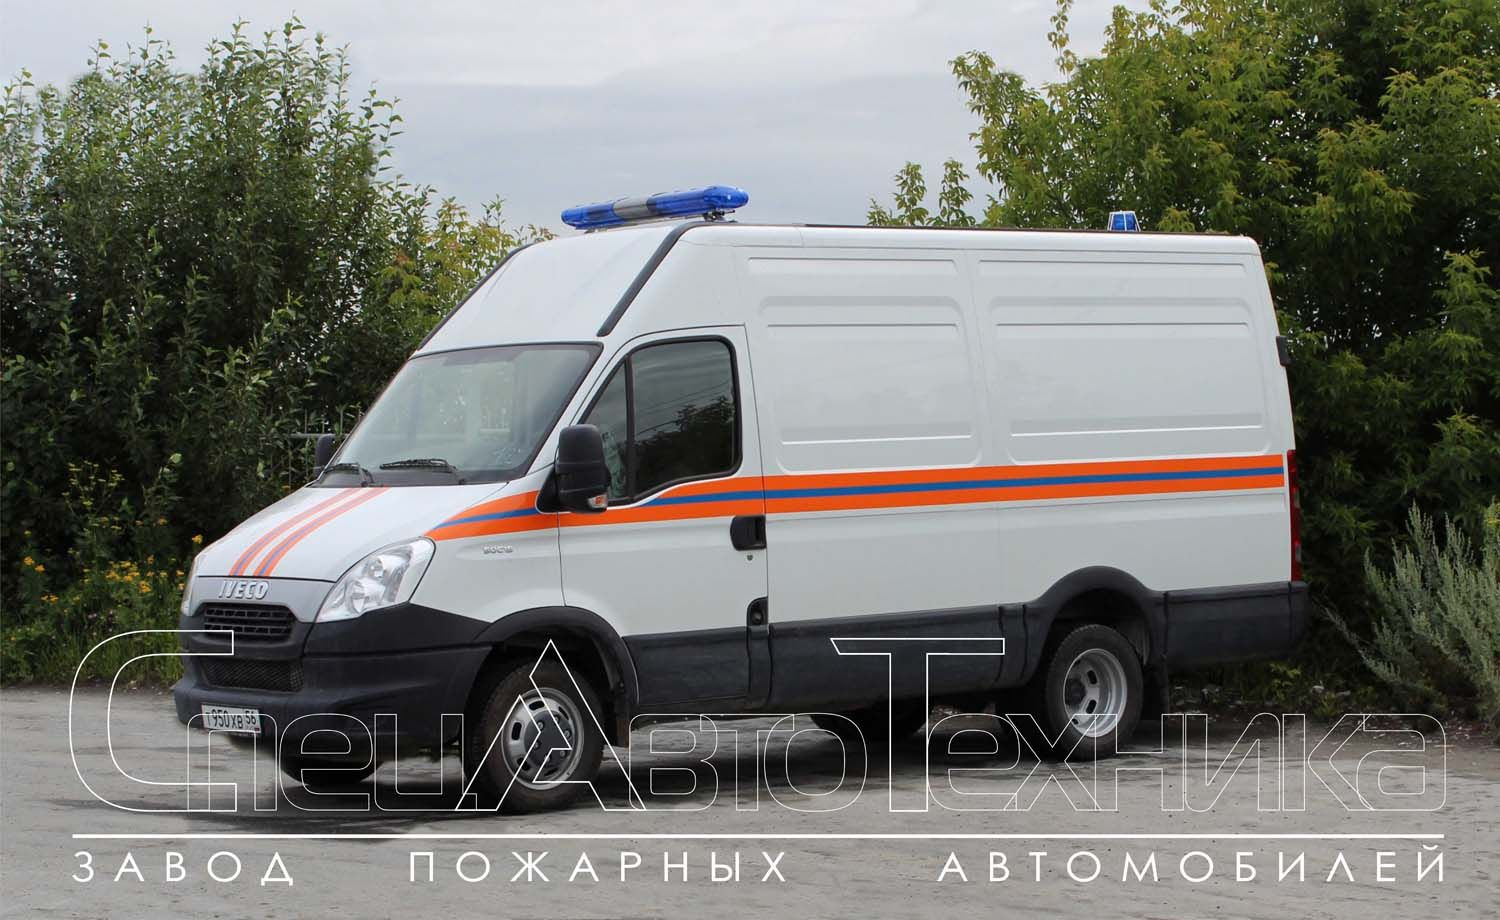 Rescue vehicle based on IVECO ACM-7